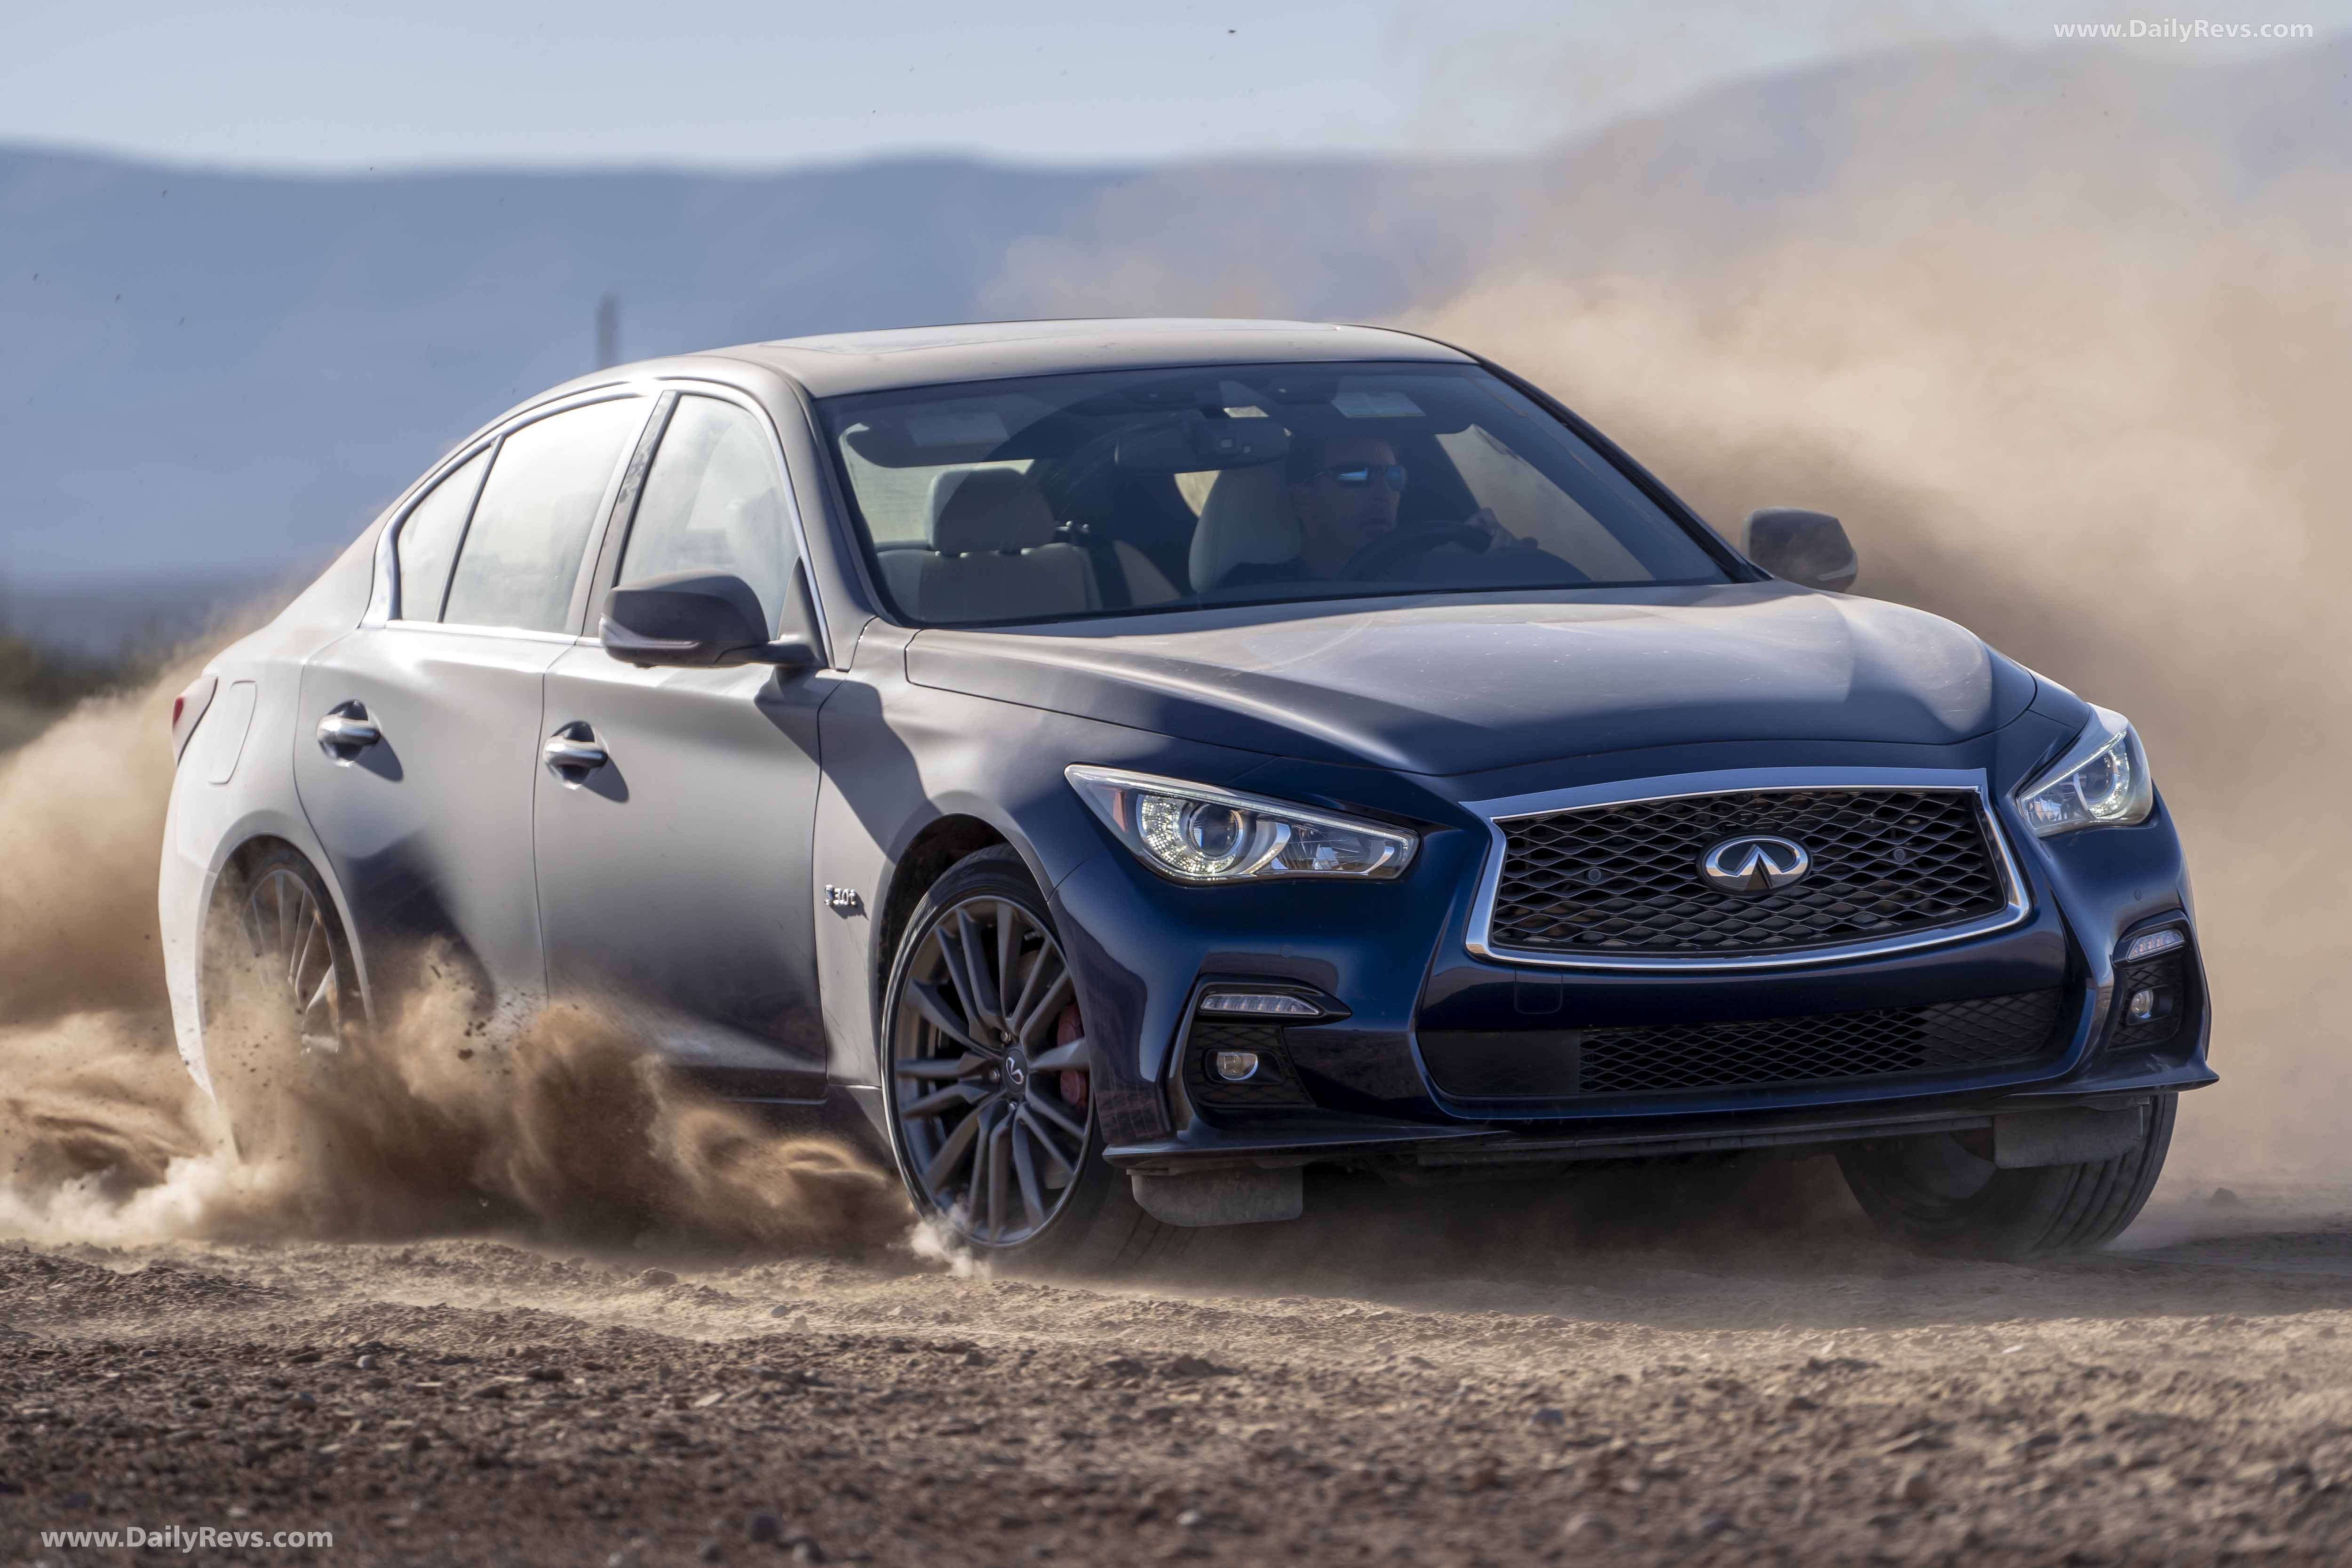 2020 Infiniti Q50 - HD Pictures, SPecs, informations ...